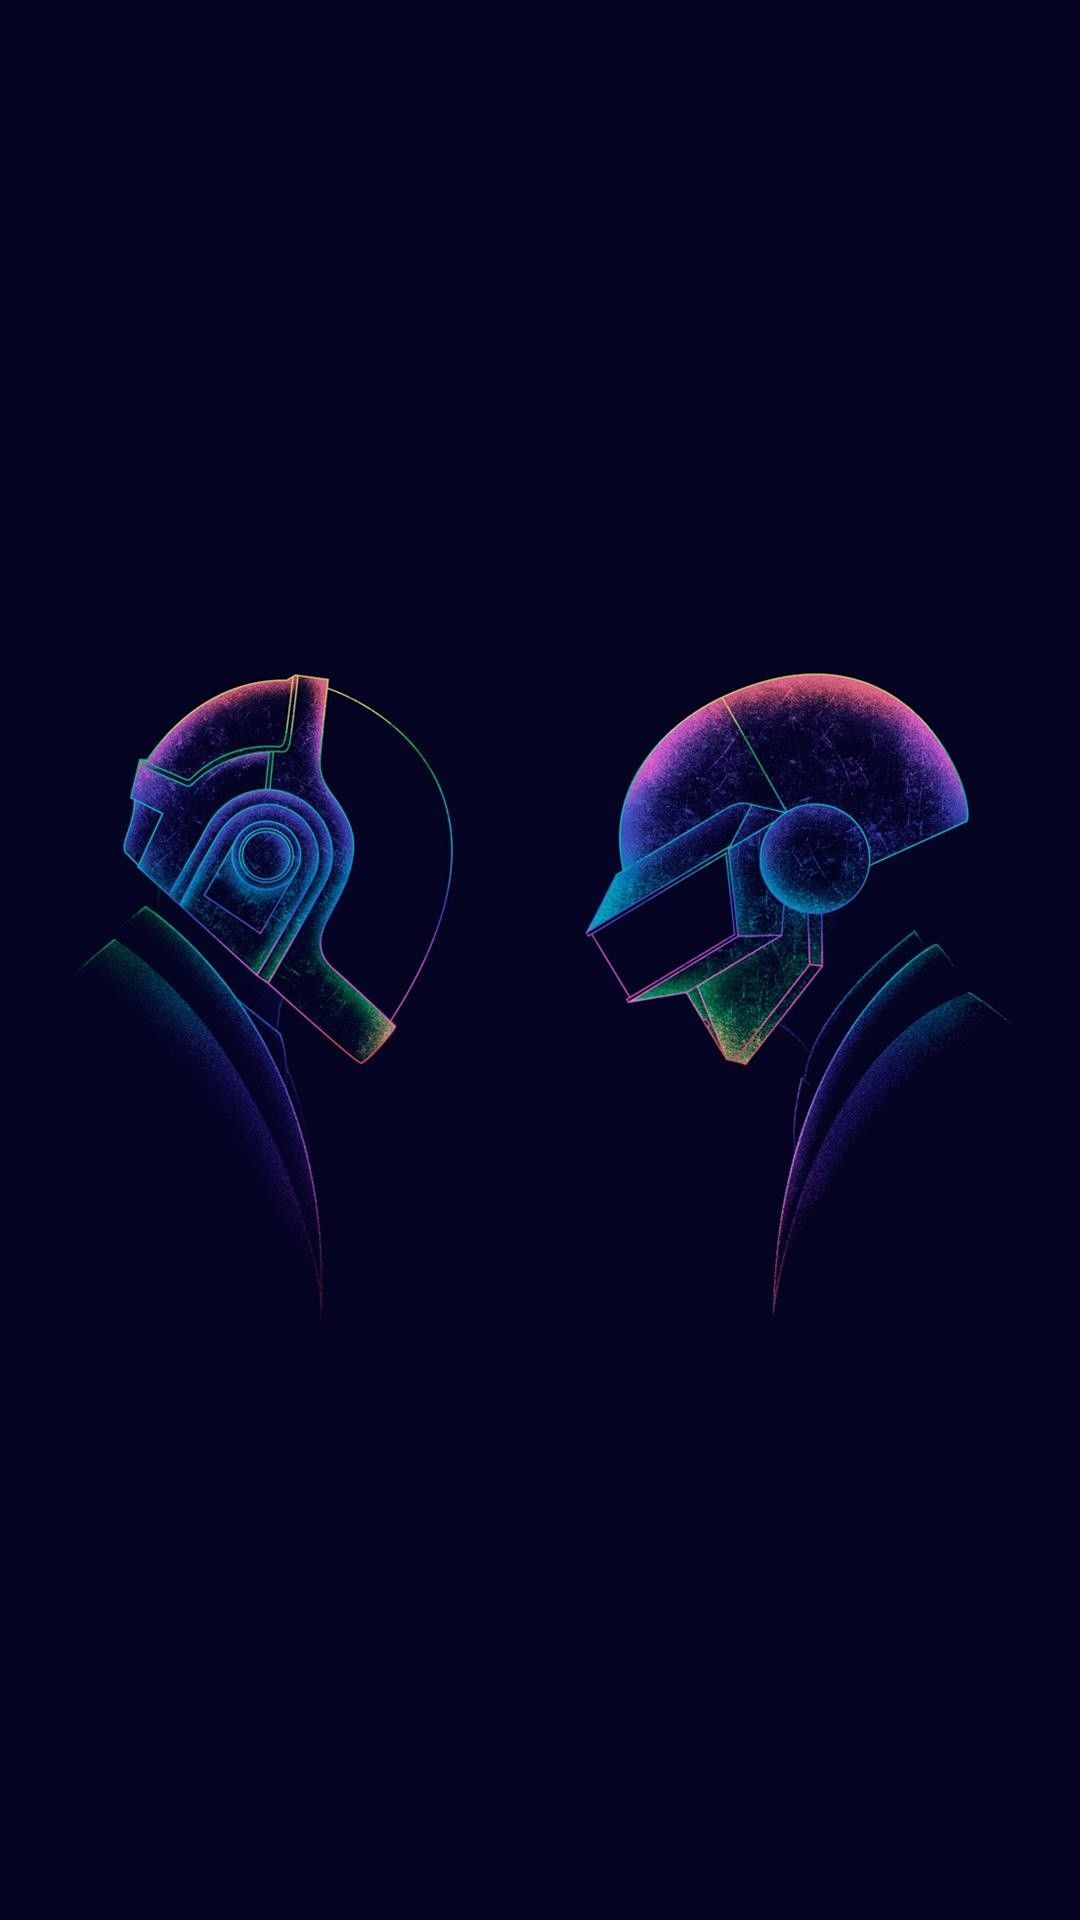 Pin by Ankeet Kavaiya on illustrations | Daft punk, Daft ...